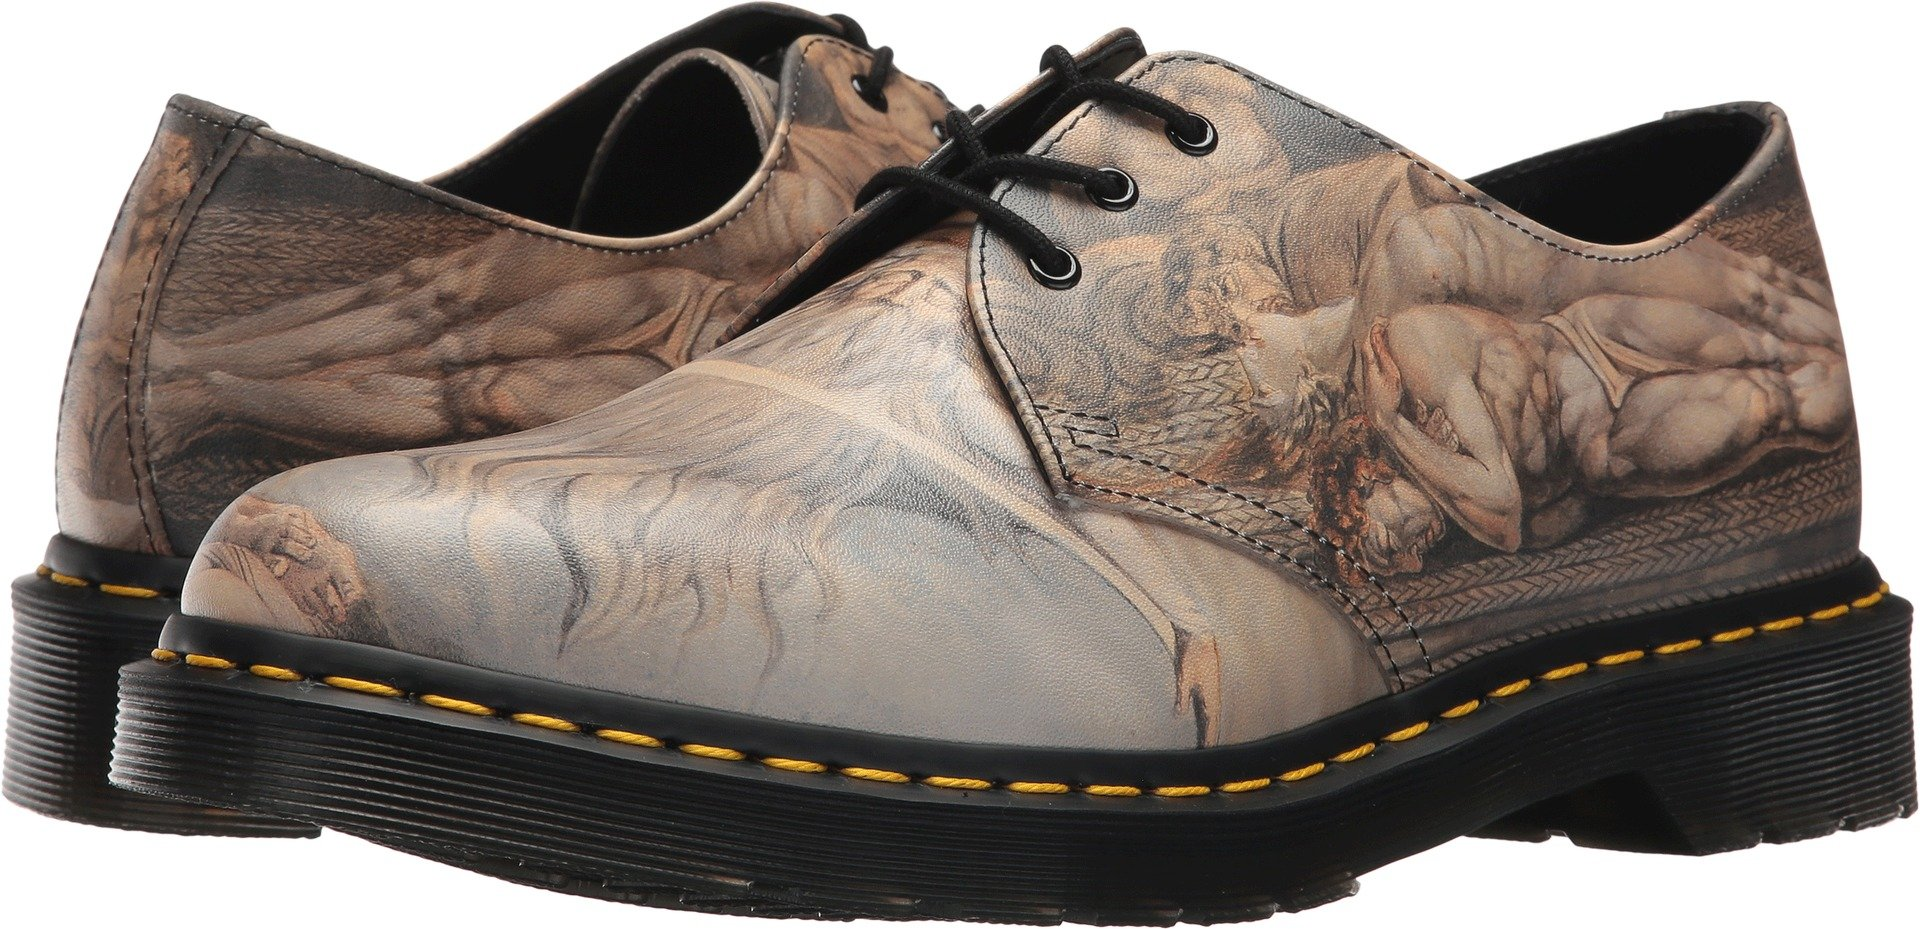 Dr. Martens Unisex 1461 3-Eye Shoe White Backhand/William Blake 5 M UK by Dr. Martens